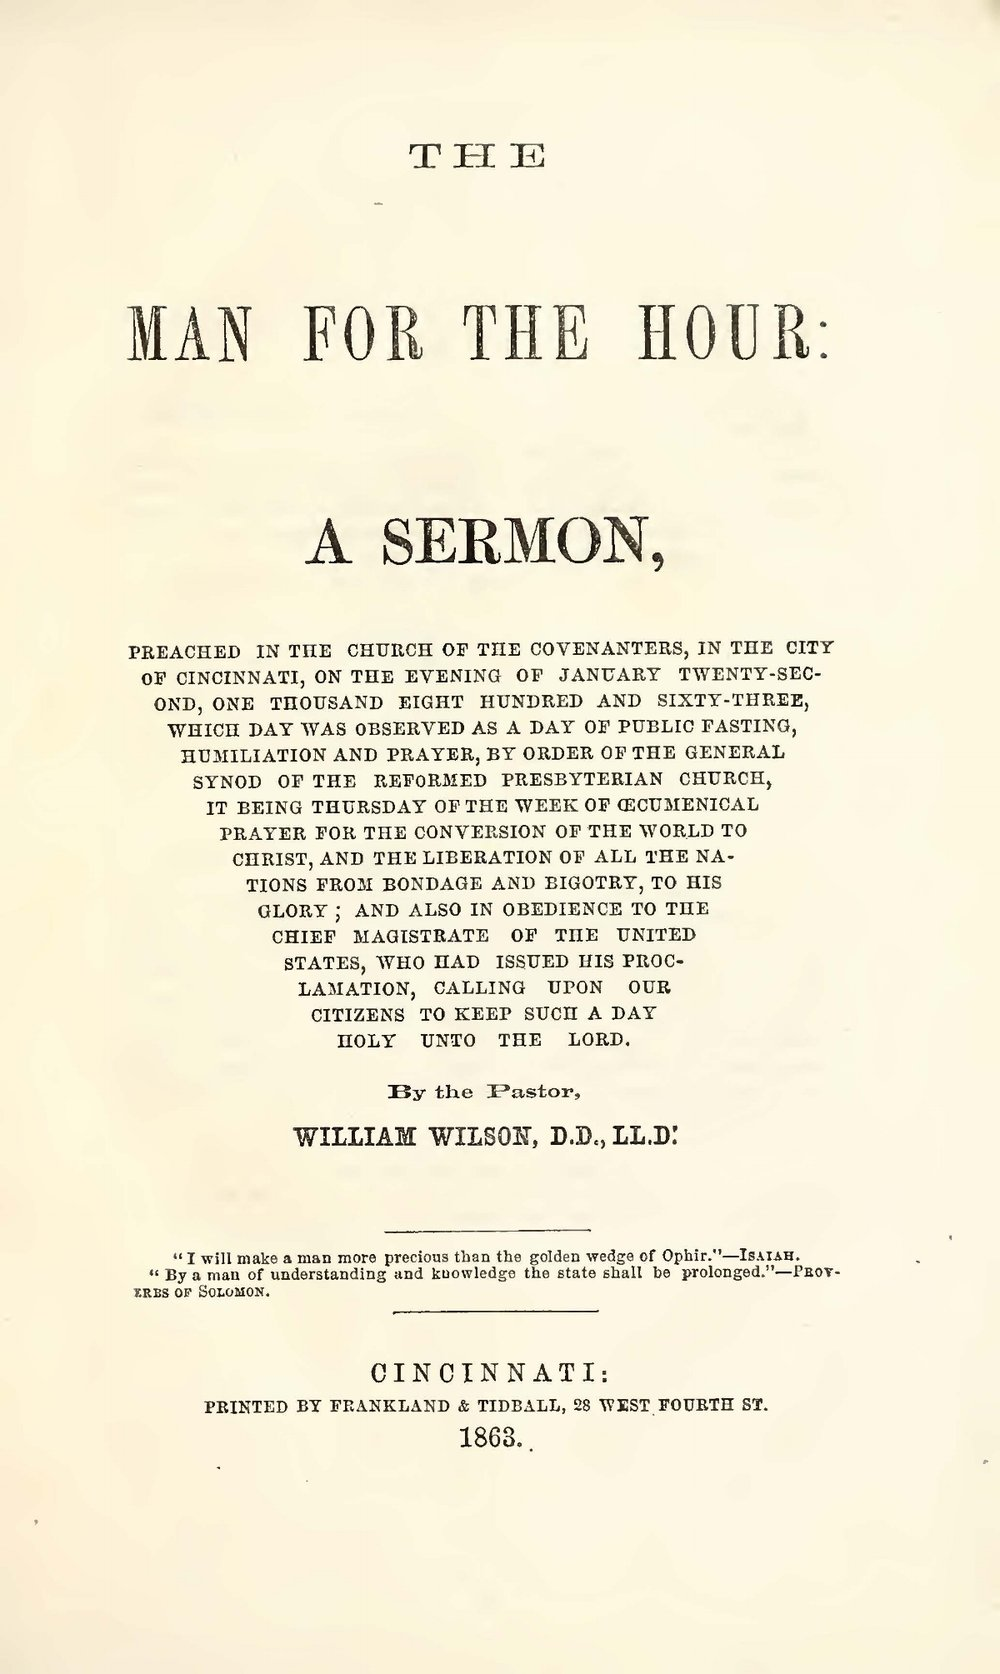 Wilson, William, The Man For the Hour Title Page.jpg